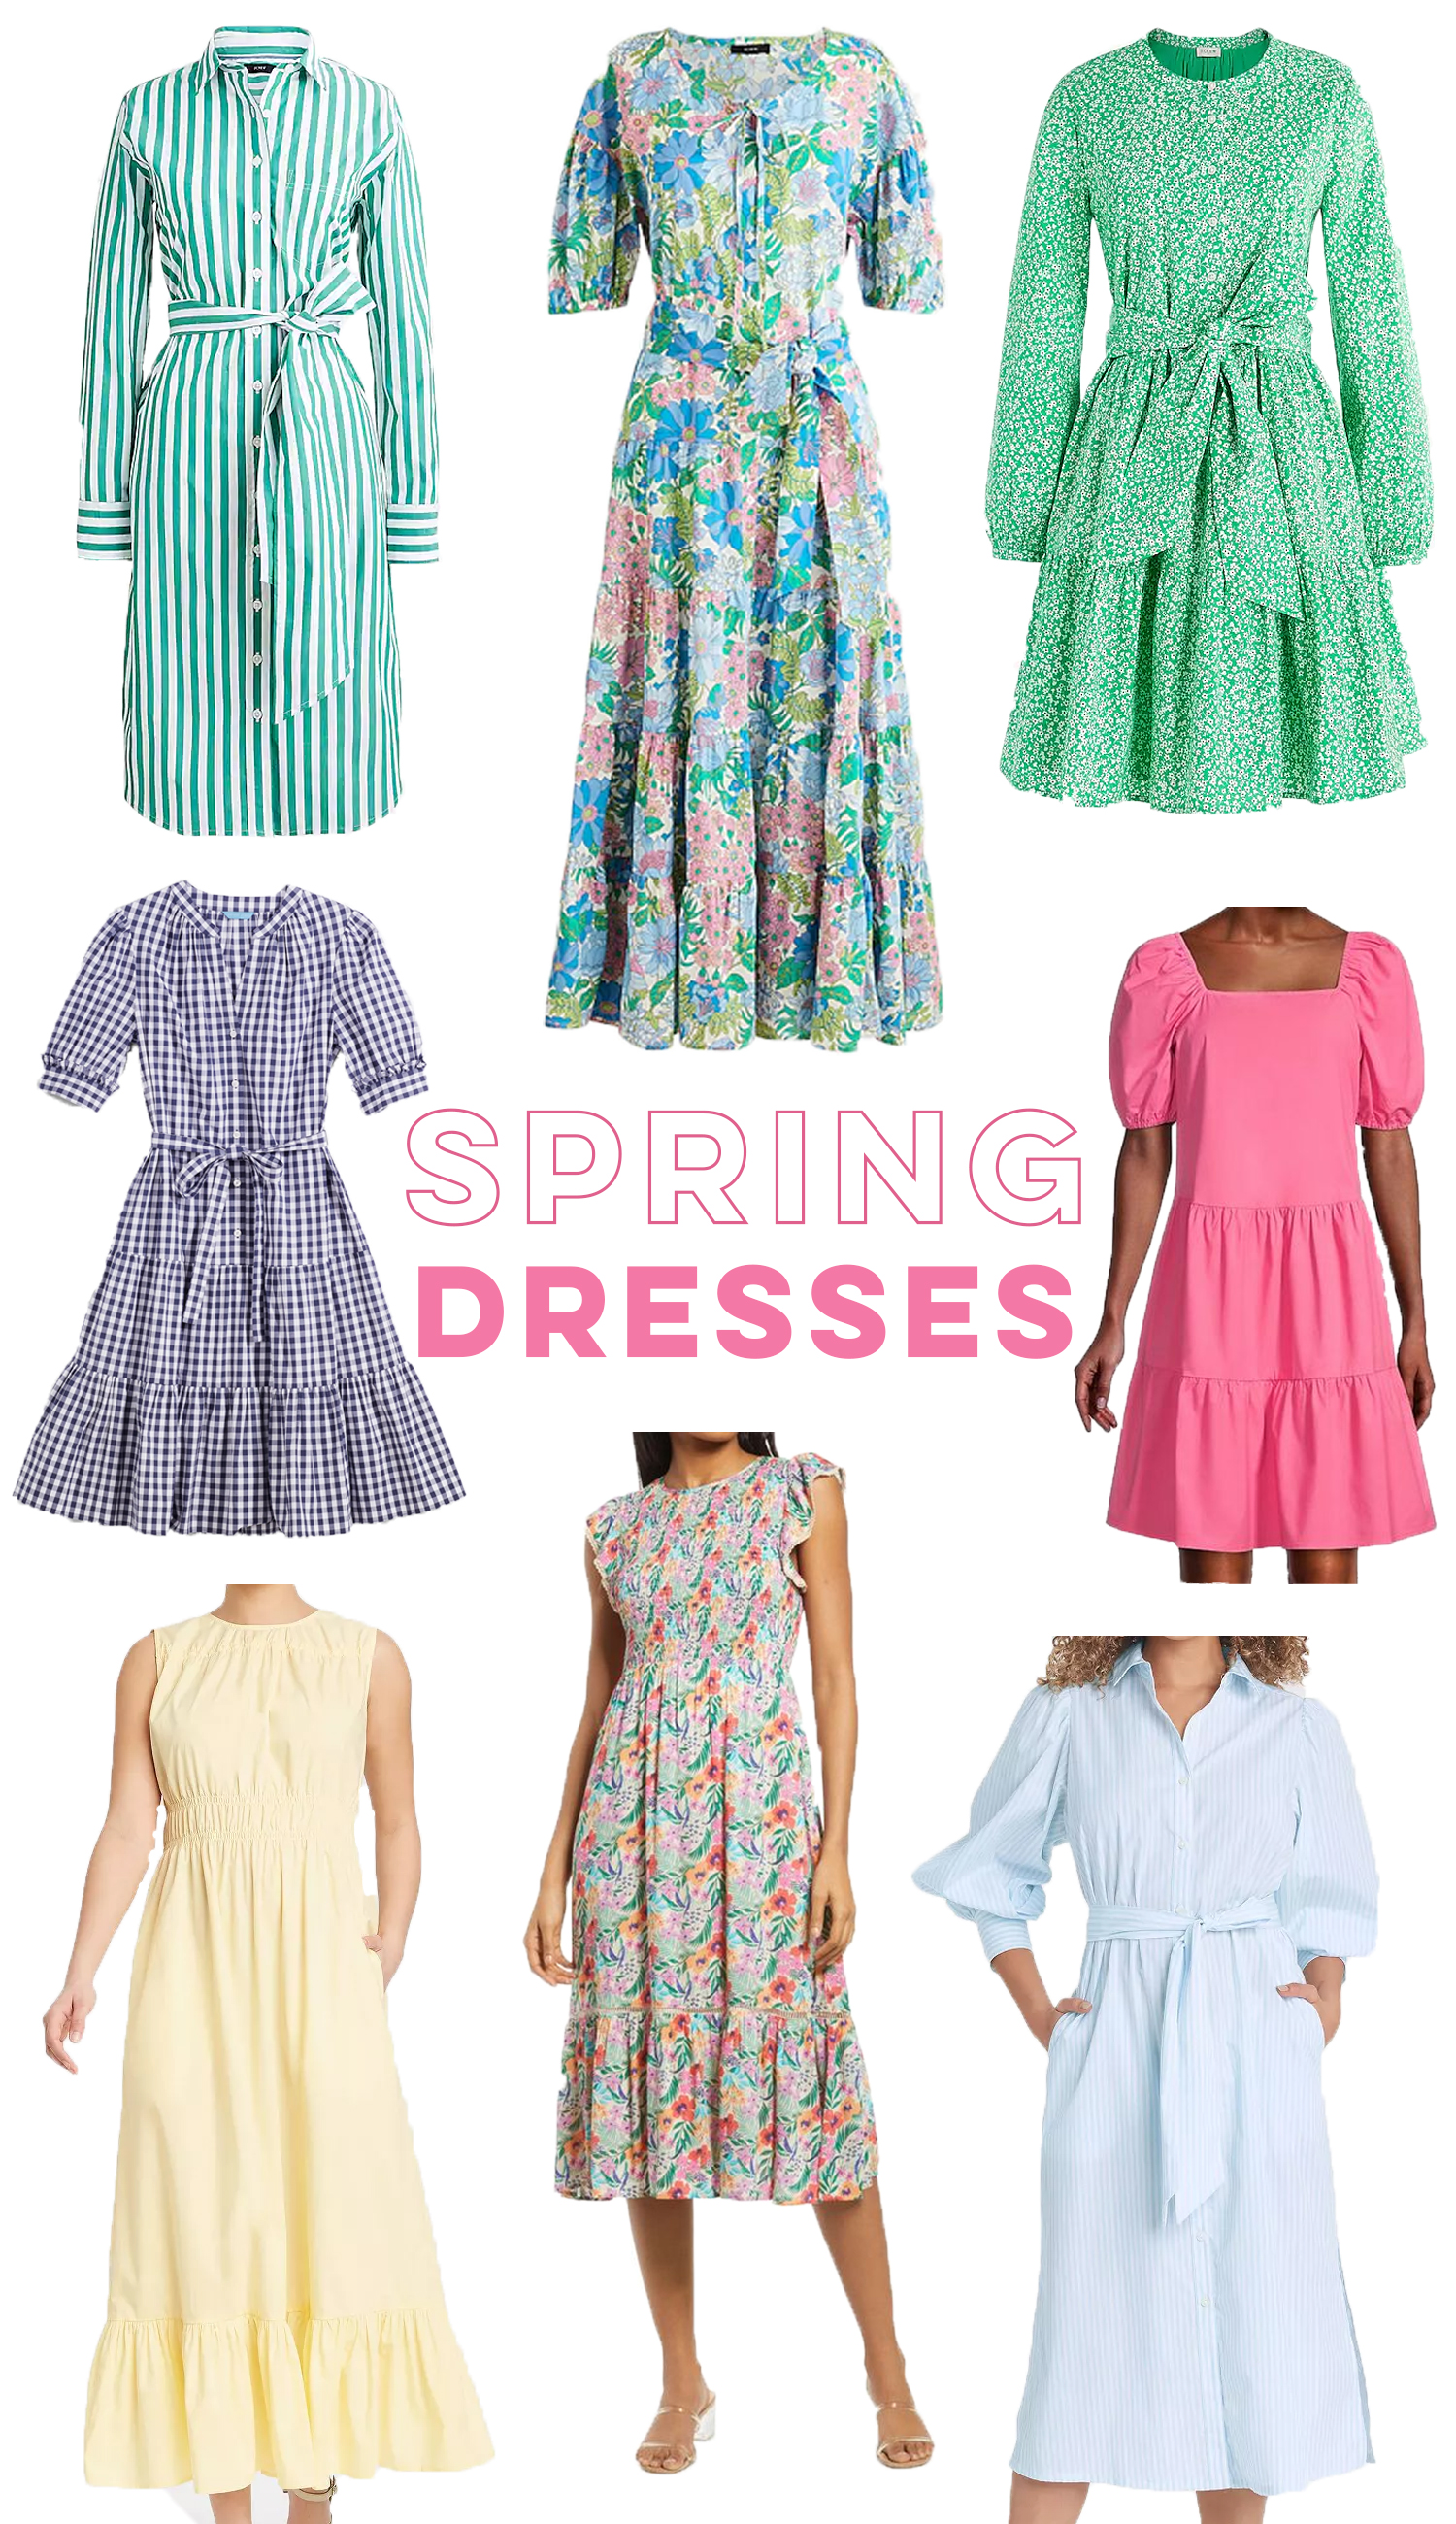 Spring Dresses Under $100 / Floral Spring Dresses / Pastel Dresses / Easter Dress / Gingham Print / Midi Dress / Striped Dress / Preppy Style / Spring Outfit Inspiration - Sunshine Style, A Florida Based Fashion and Lifestyle Blog by Katie